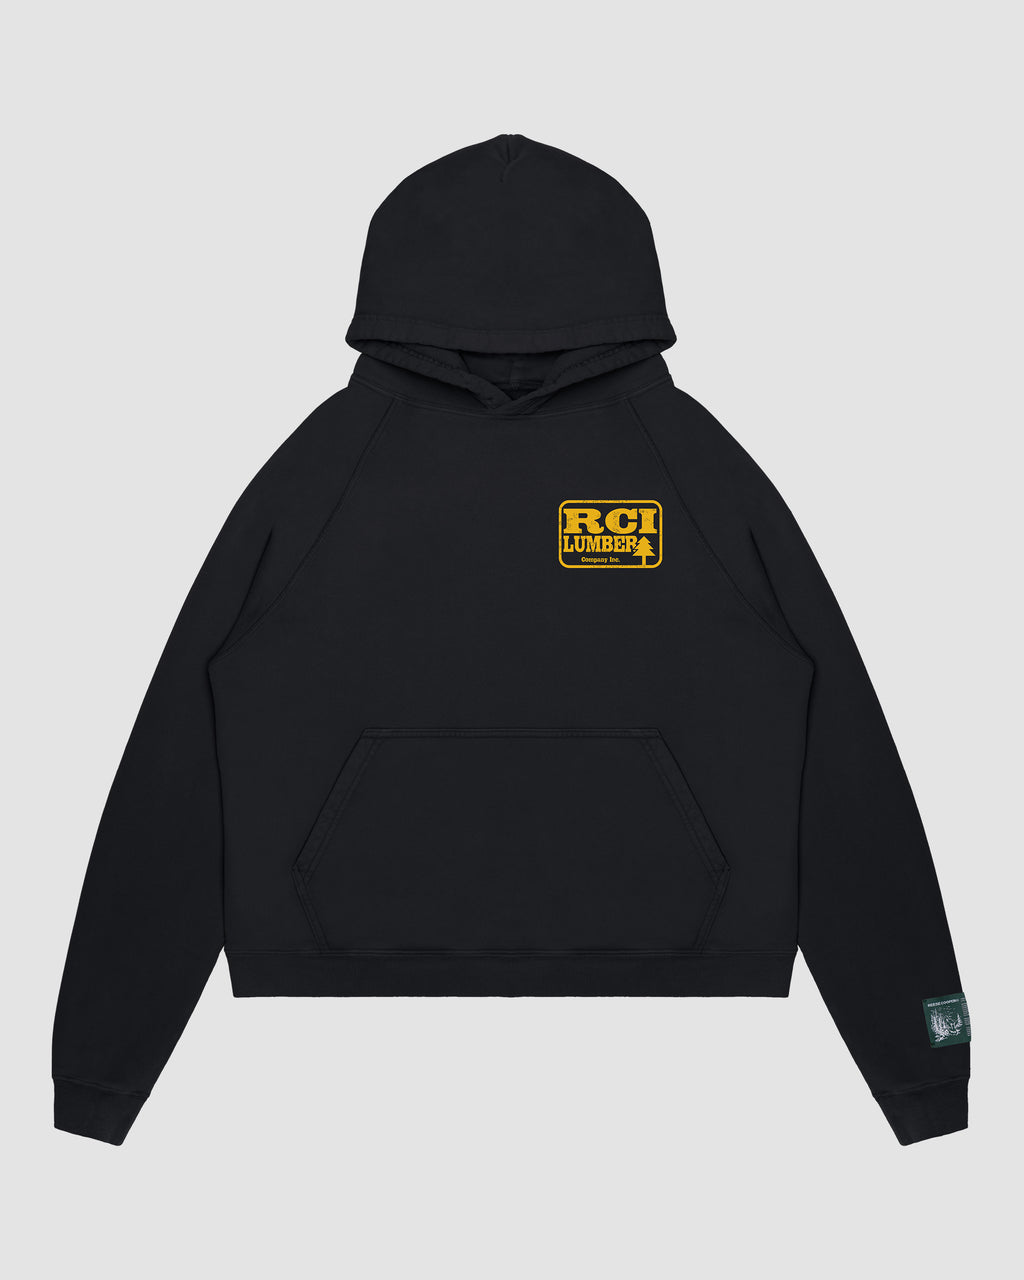 RCI Lumber Hooded Sweatshirt in Black